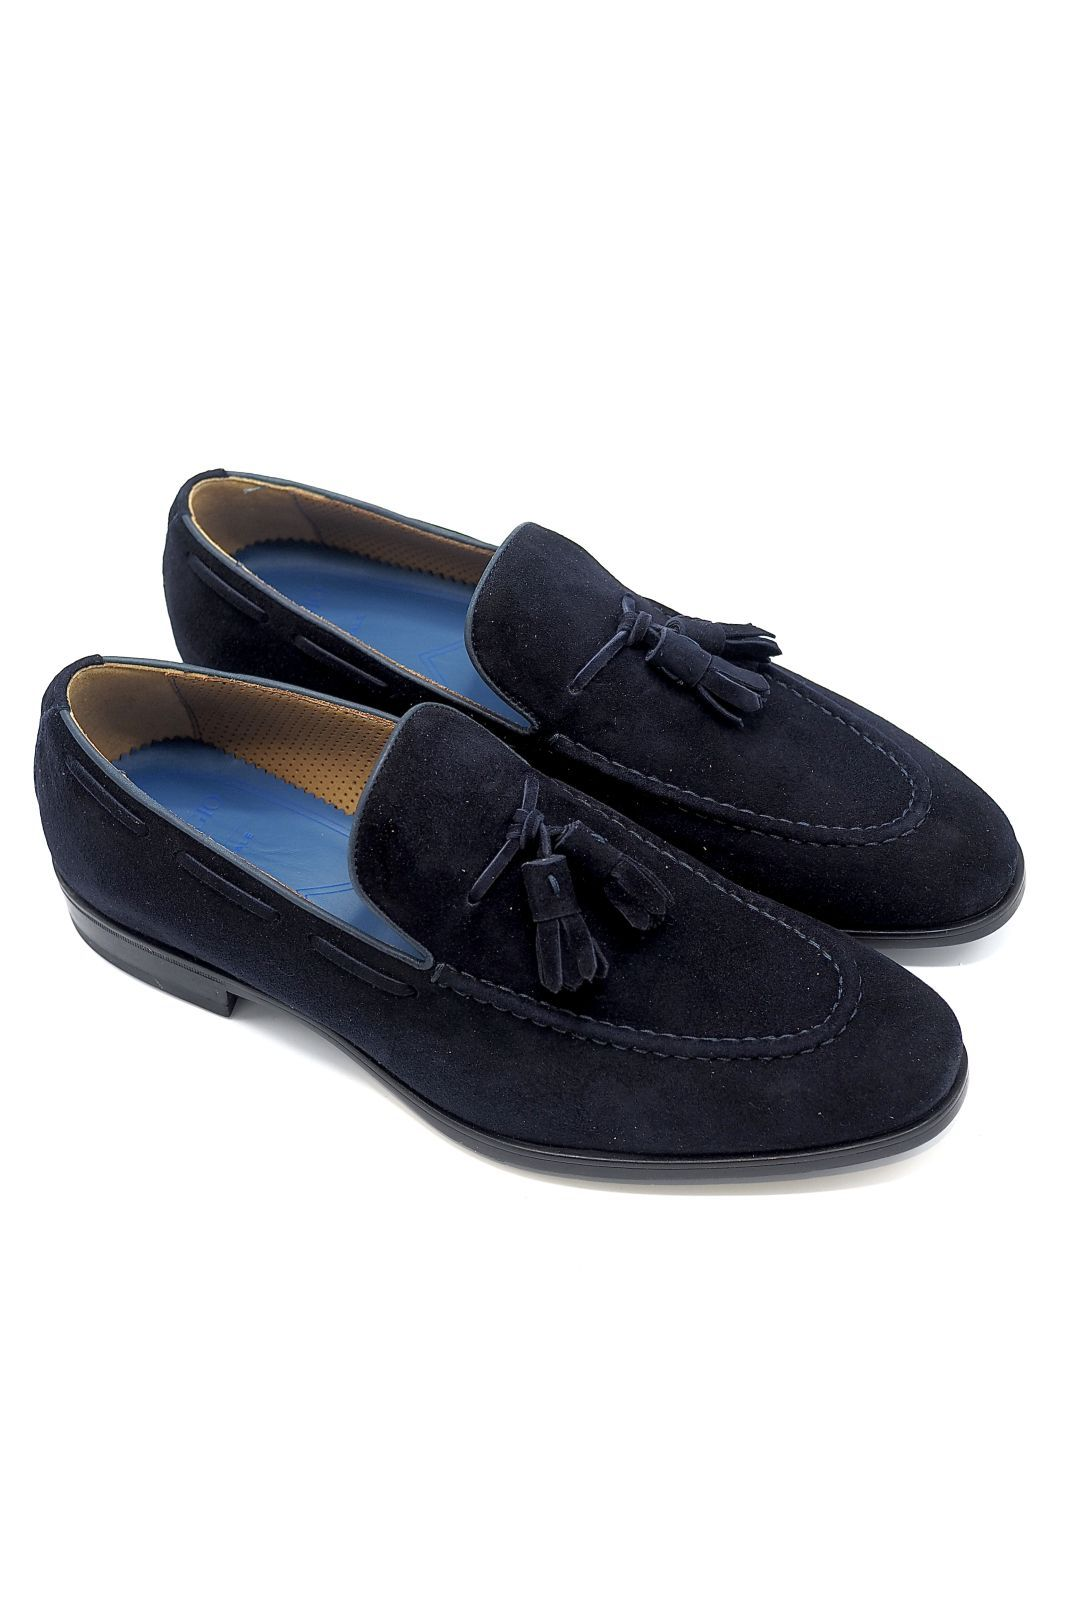 Giorgio 1958 mocassin Bleu hommes (GG1958-Collège - 50502 COLLEGE Blu) - Marine | Much more than shoes